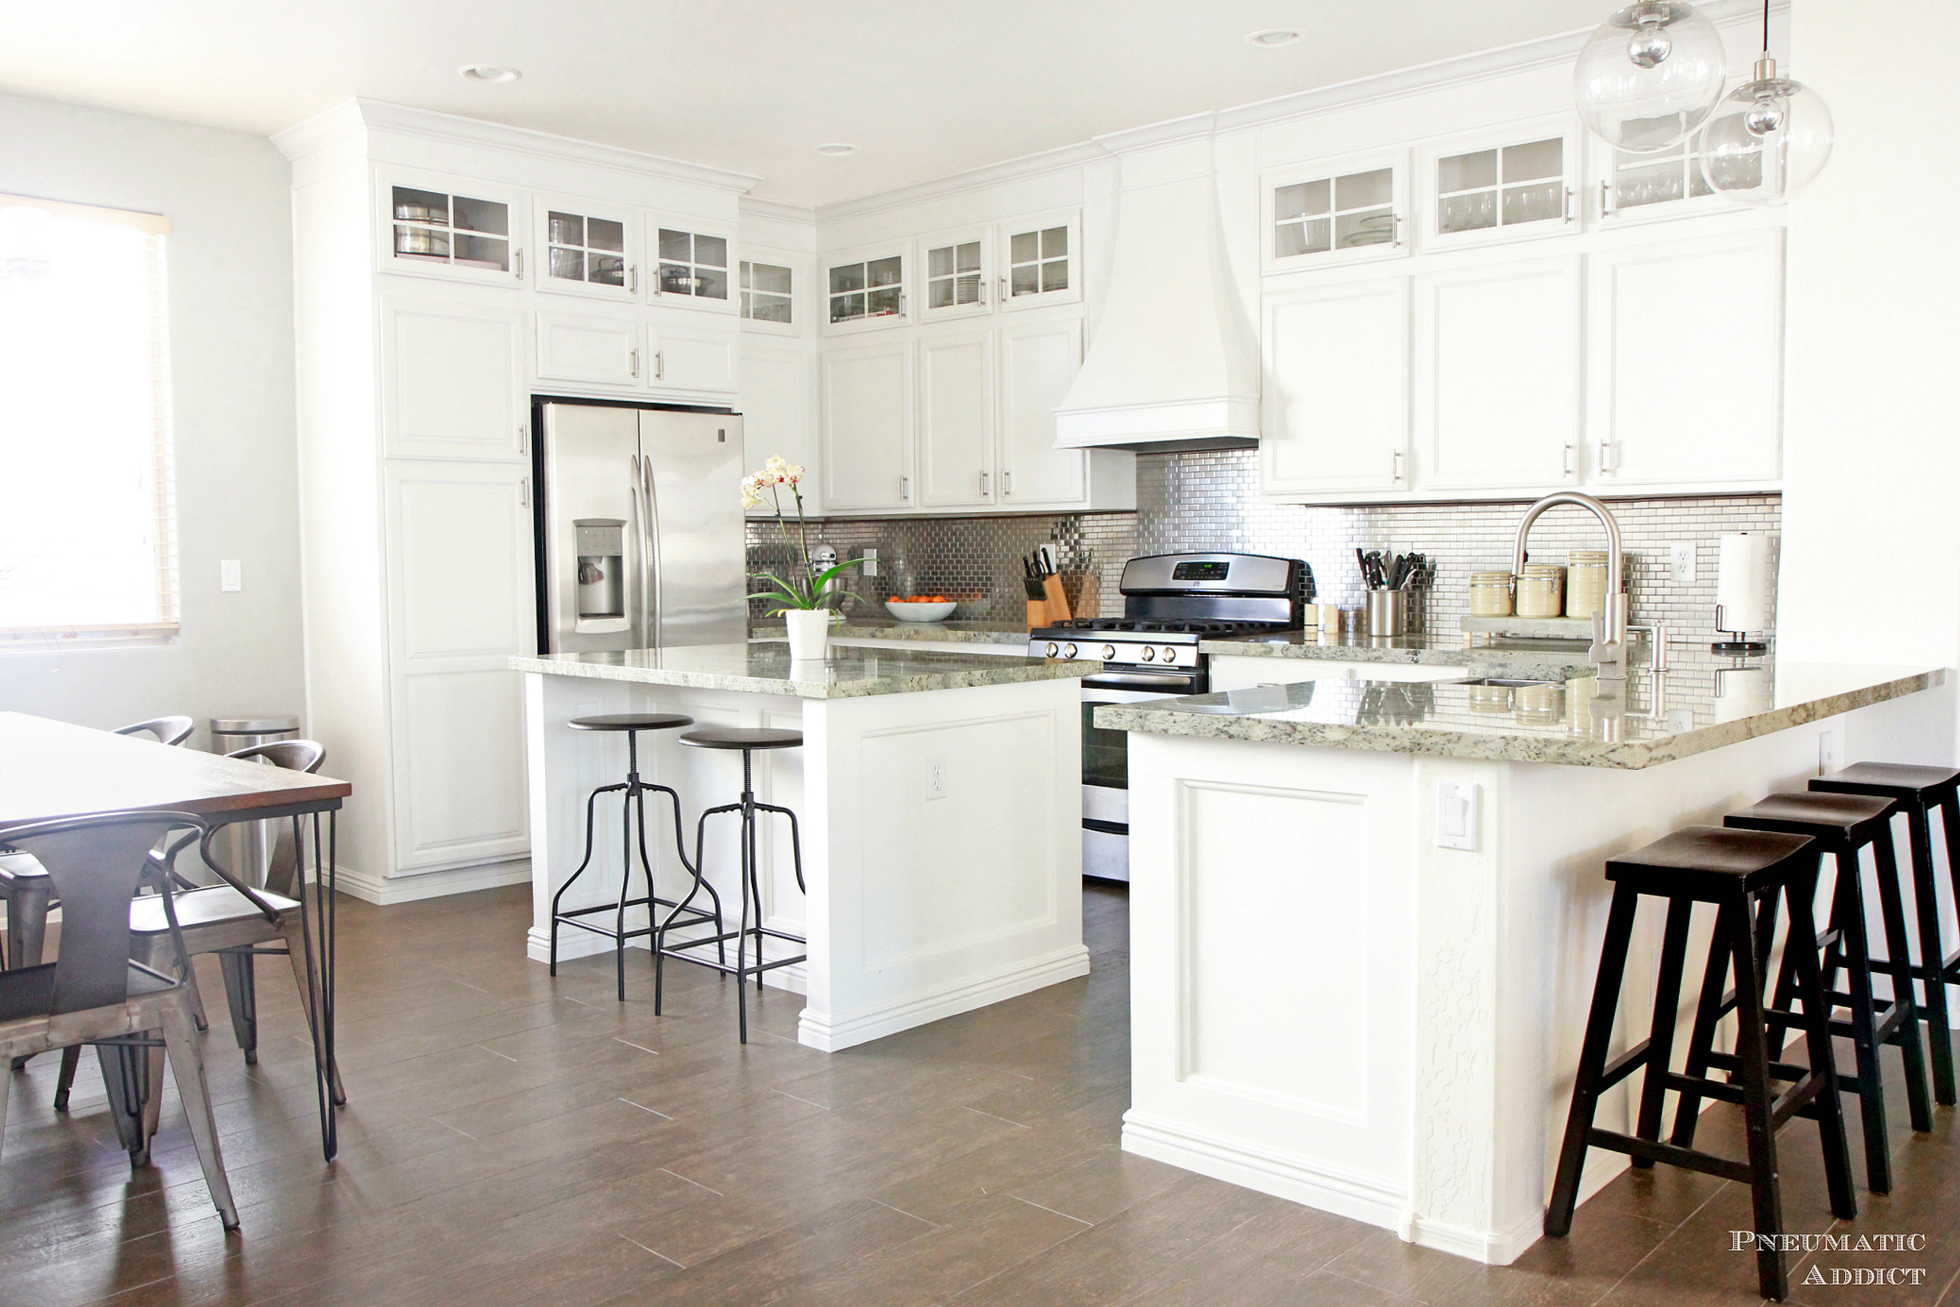 Bright white cabinets and a dark wood floor